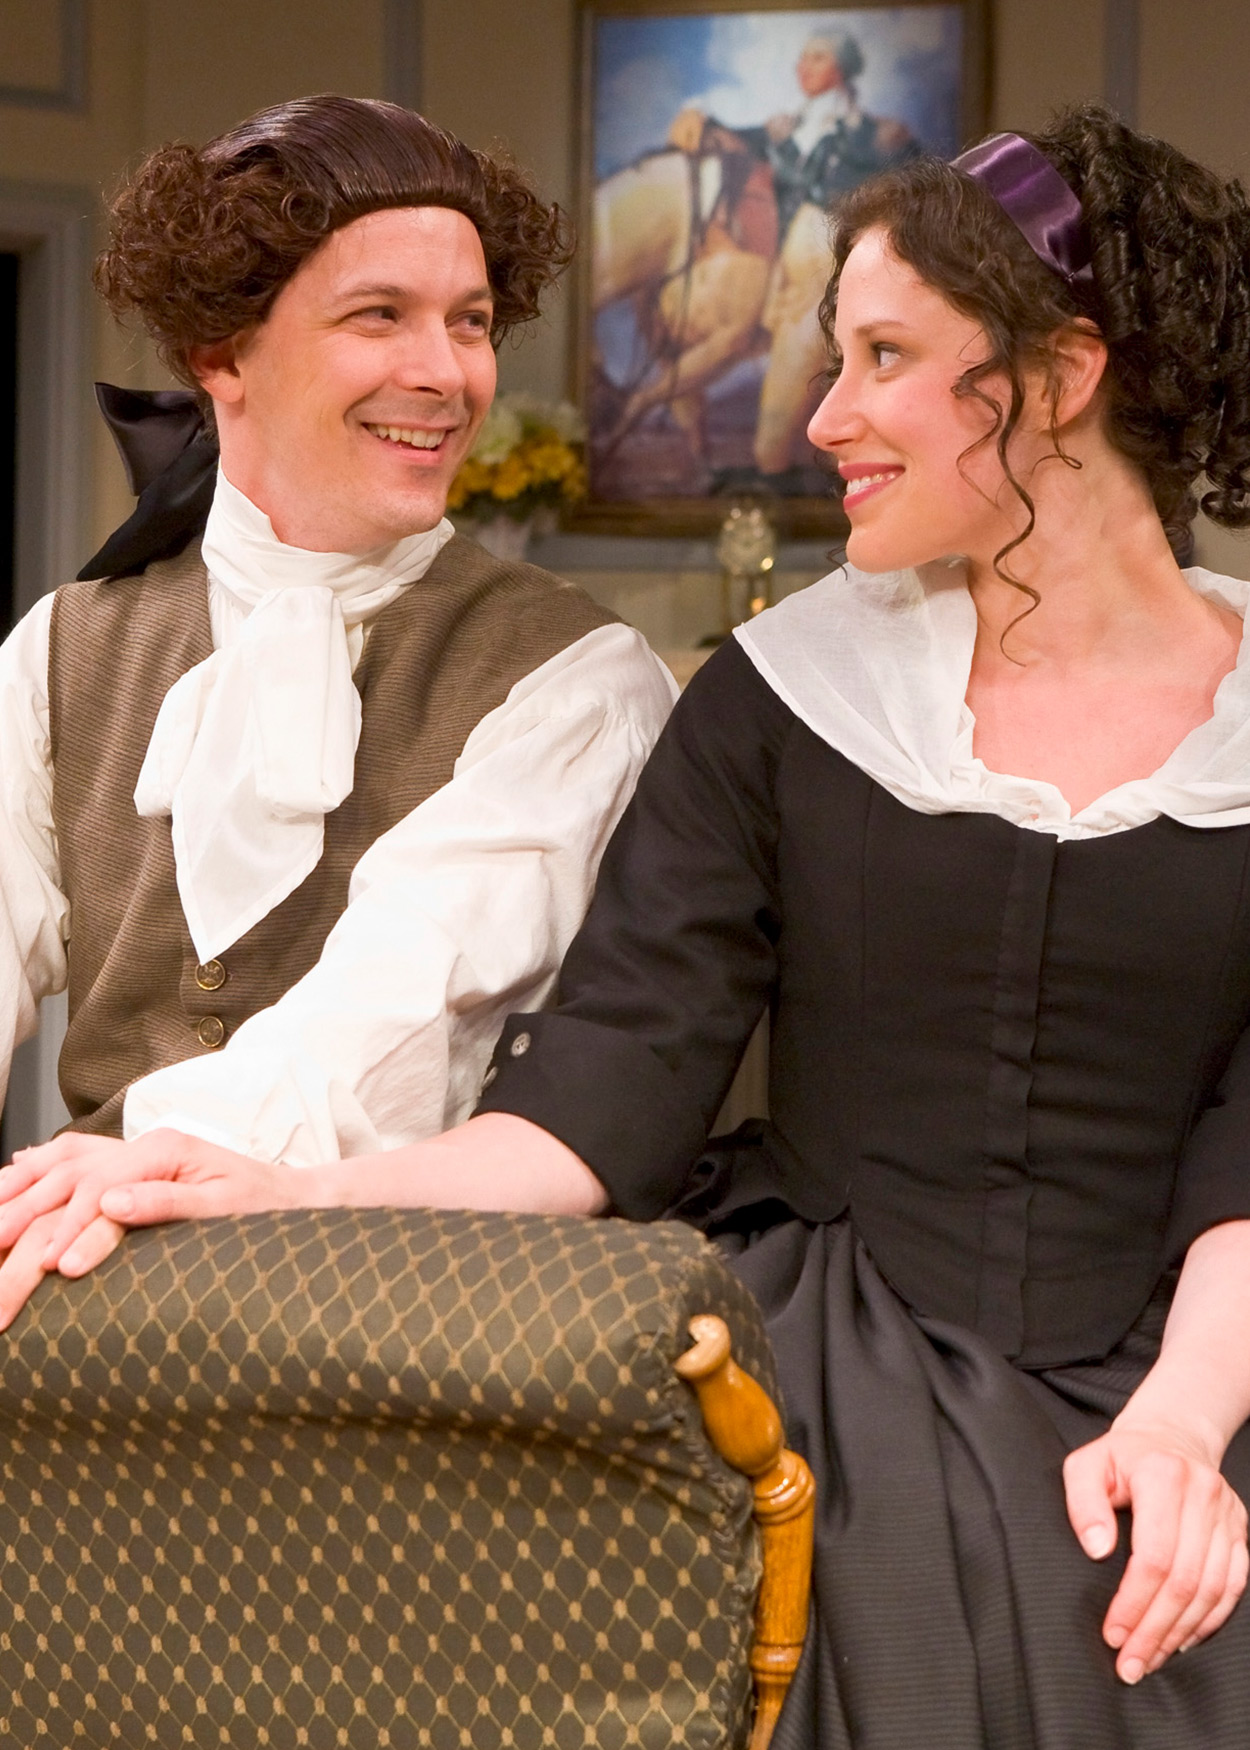 man and woman in colonial dress smile at each other